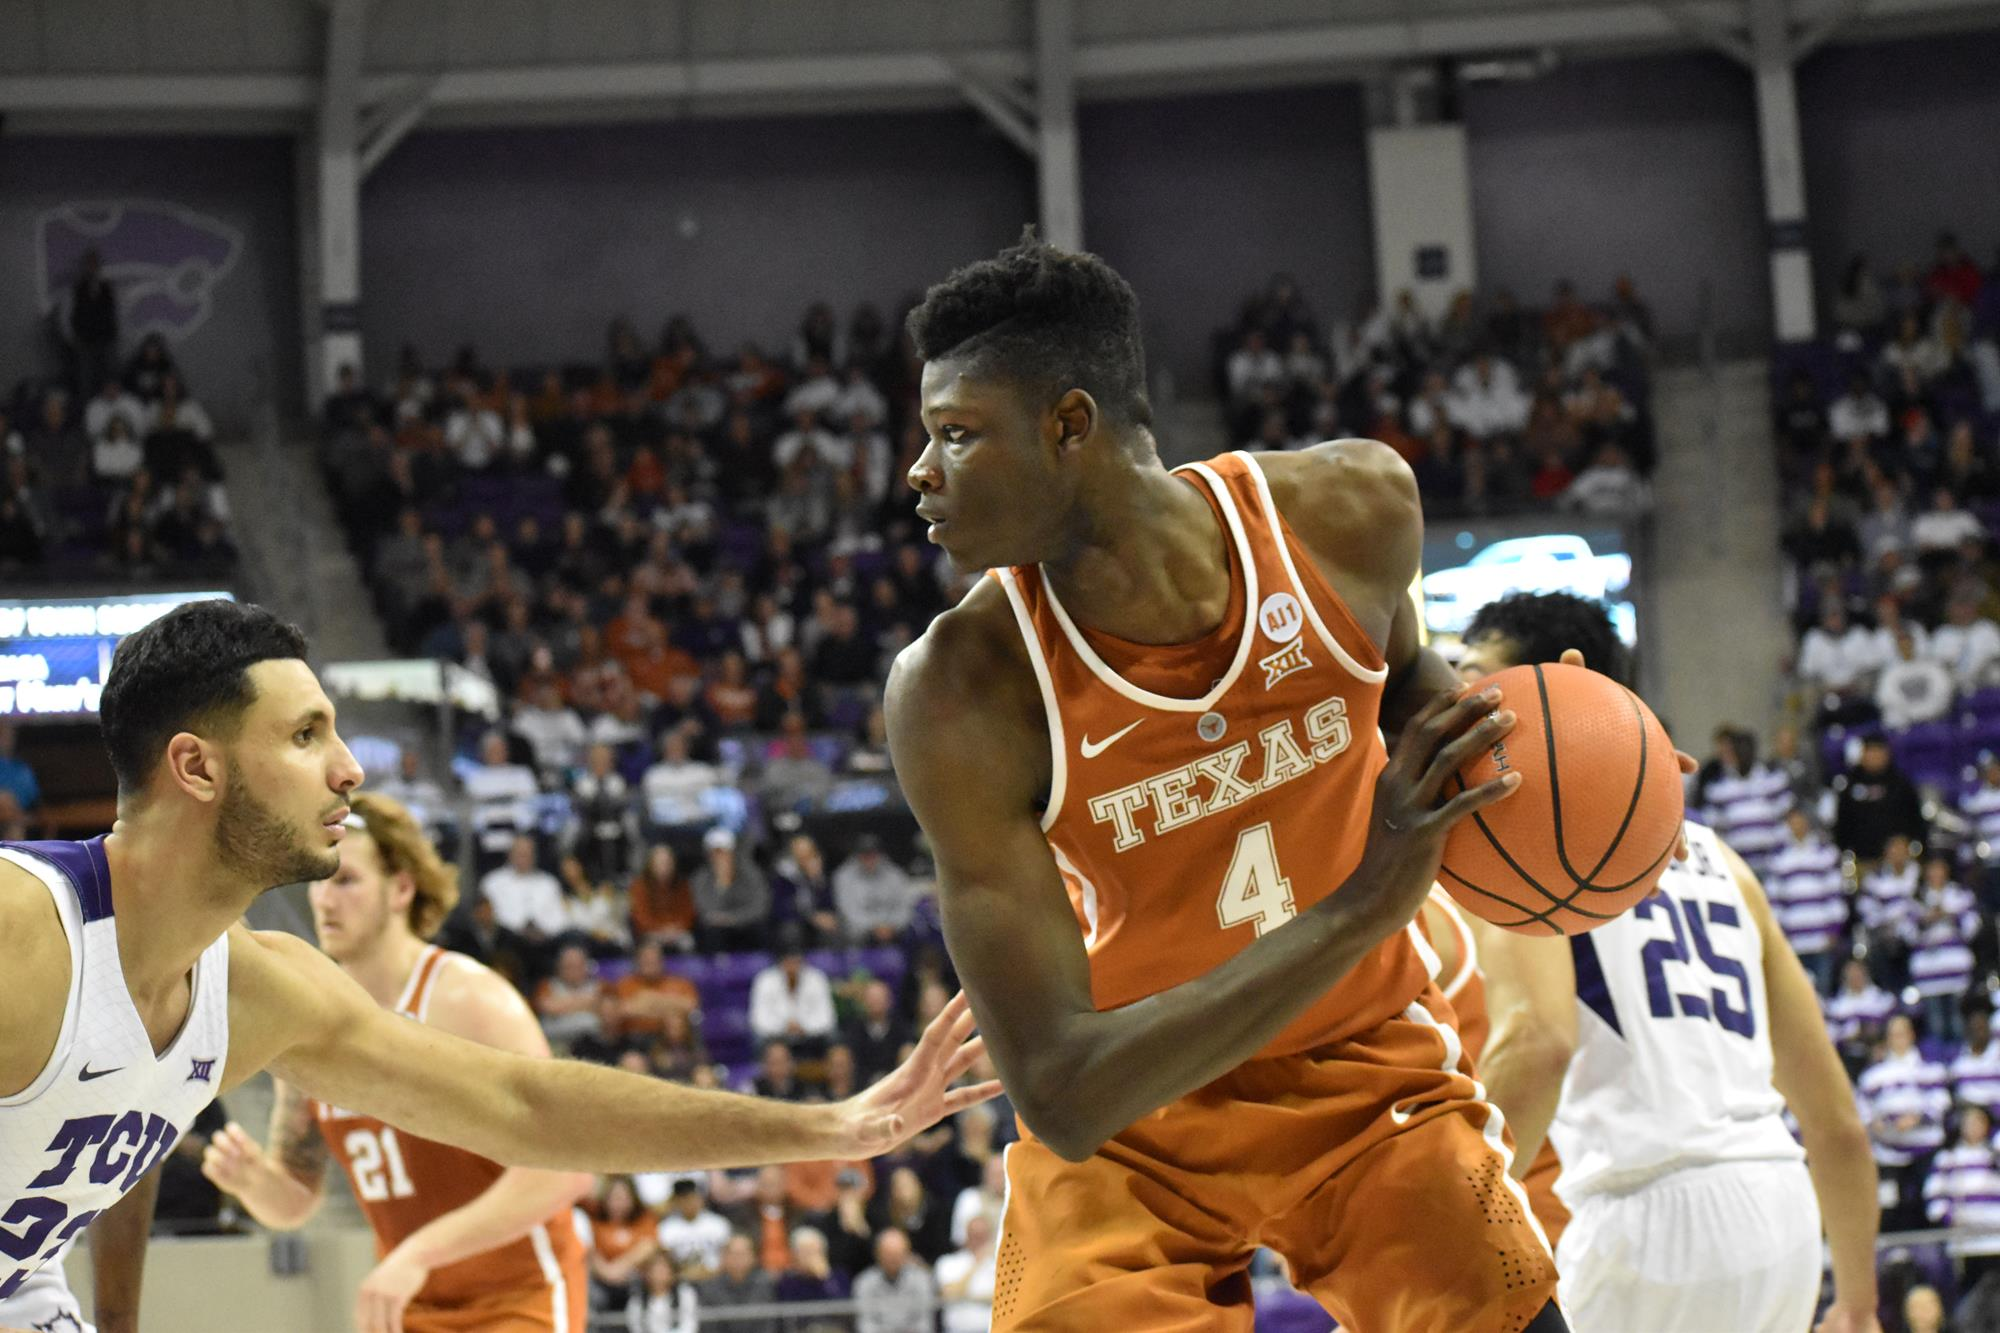 reputable site dfeaa 41be7 Men's Basketball falls at TCU, 87-71 - University of Texas ...